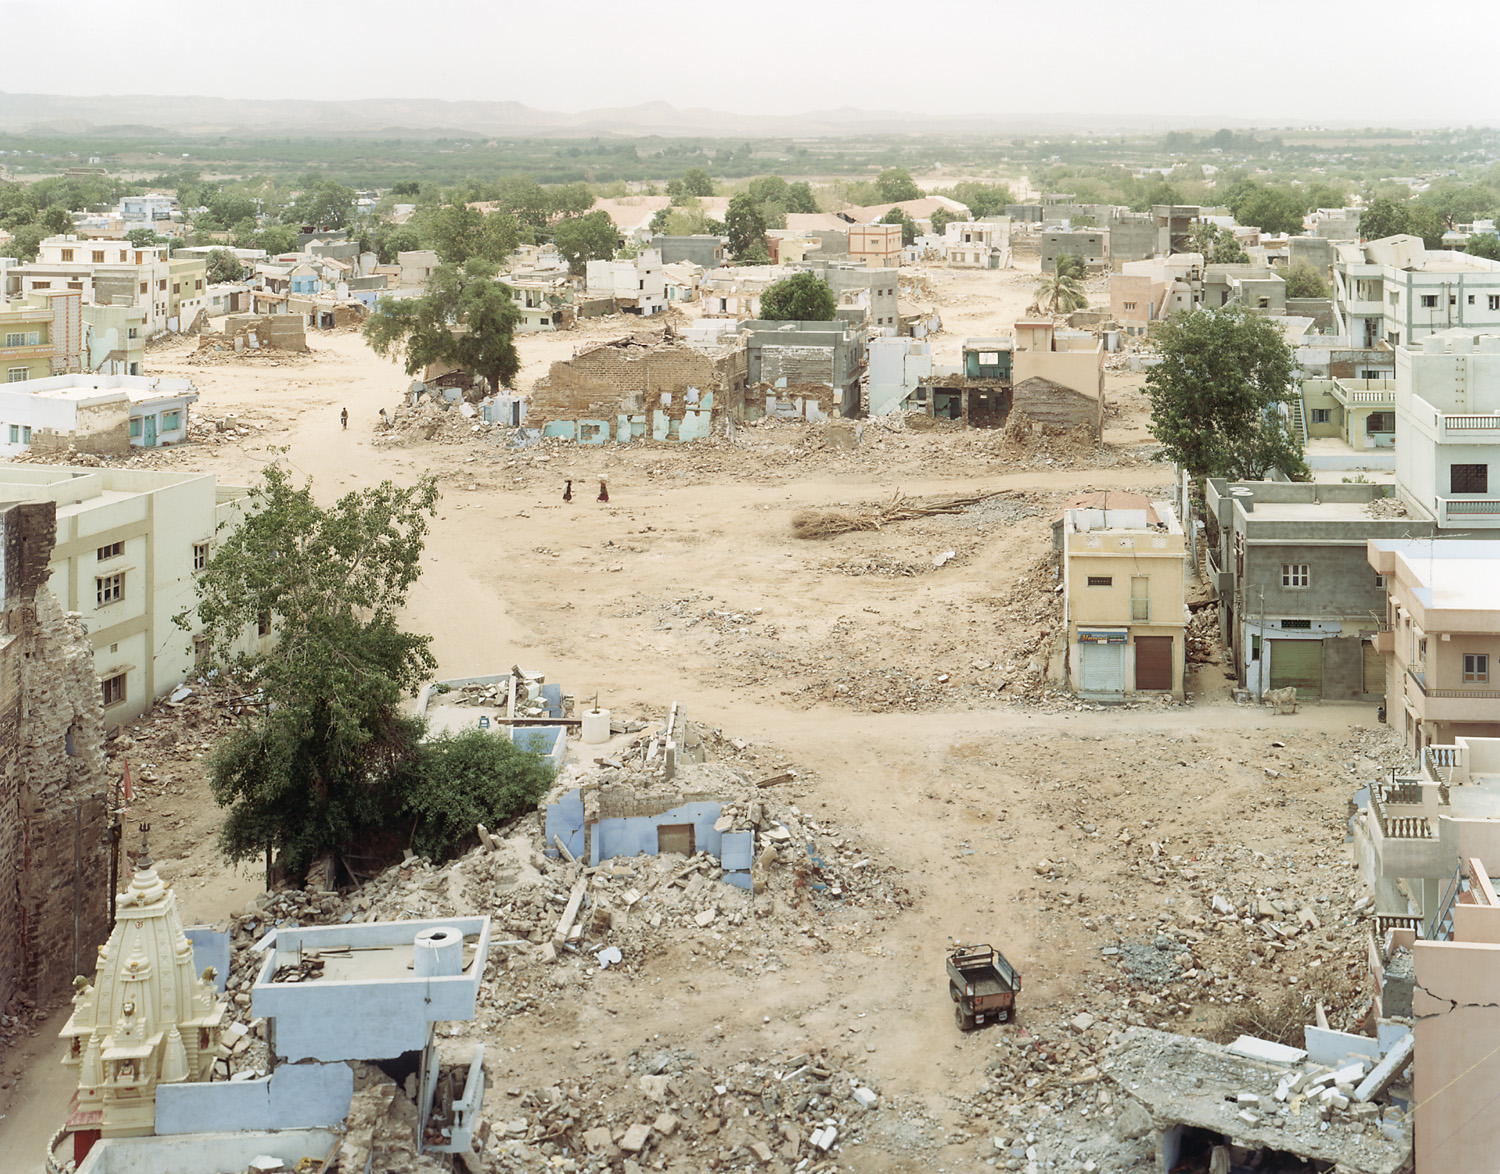 Sasha Bezzubov, Earthquake #6 India, 2001